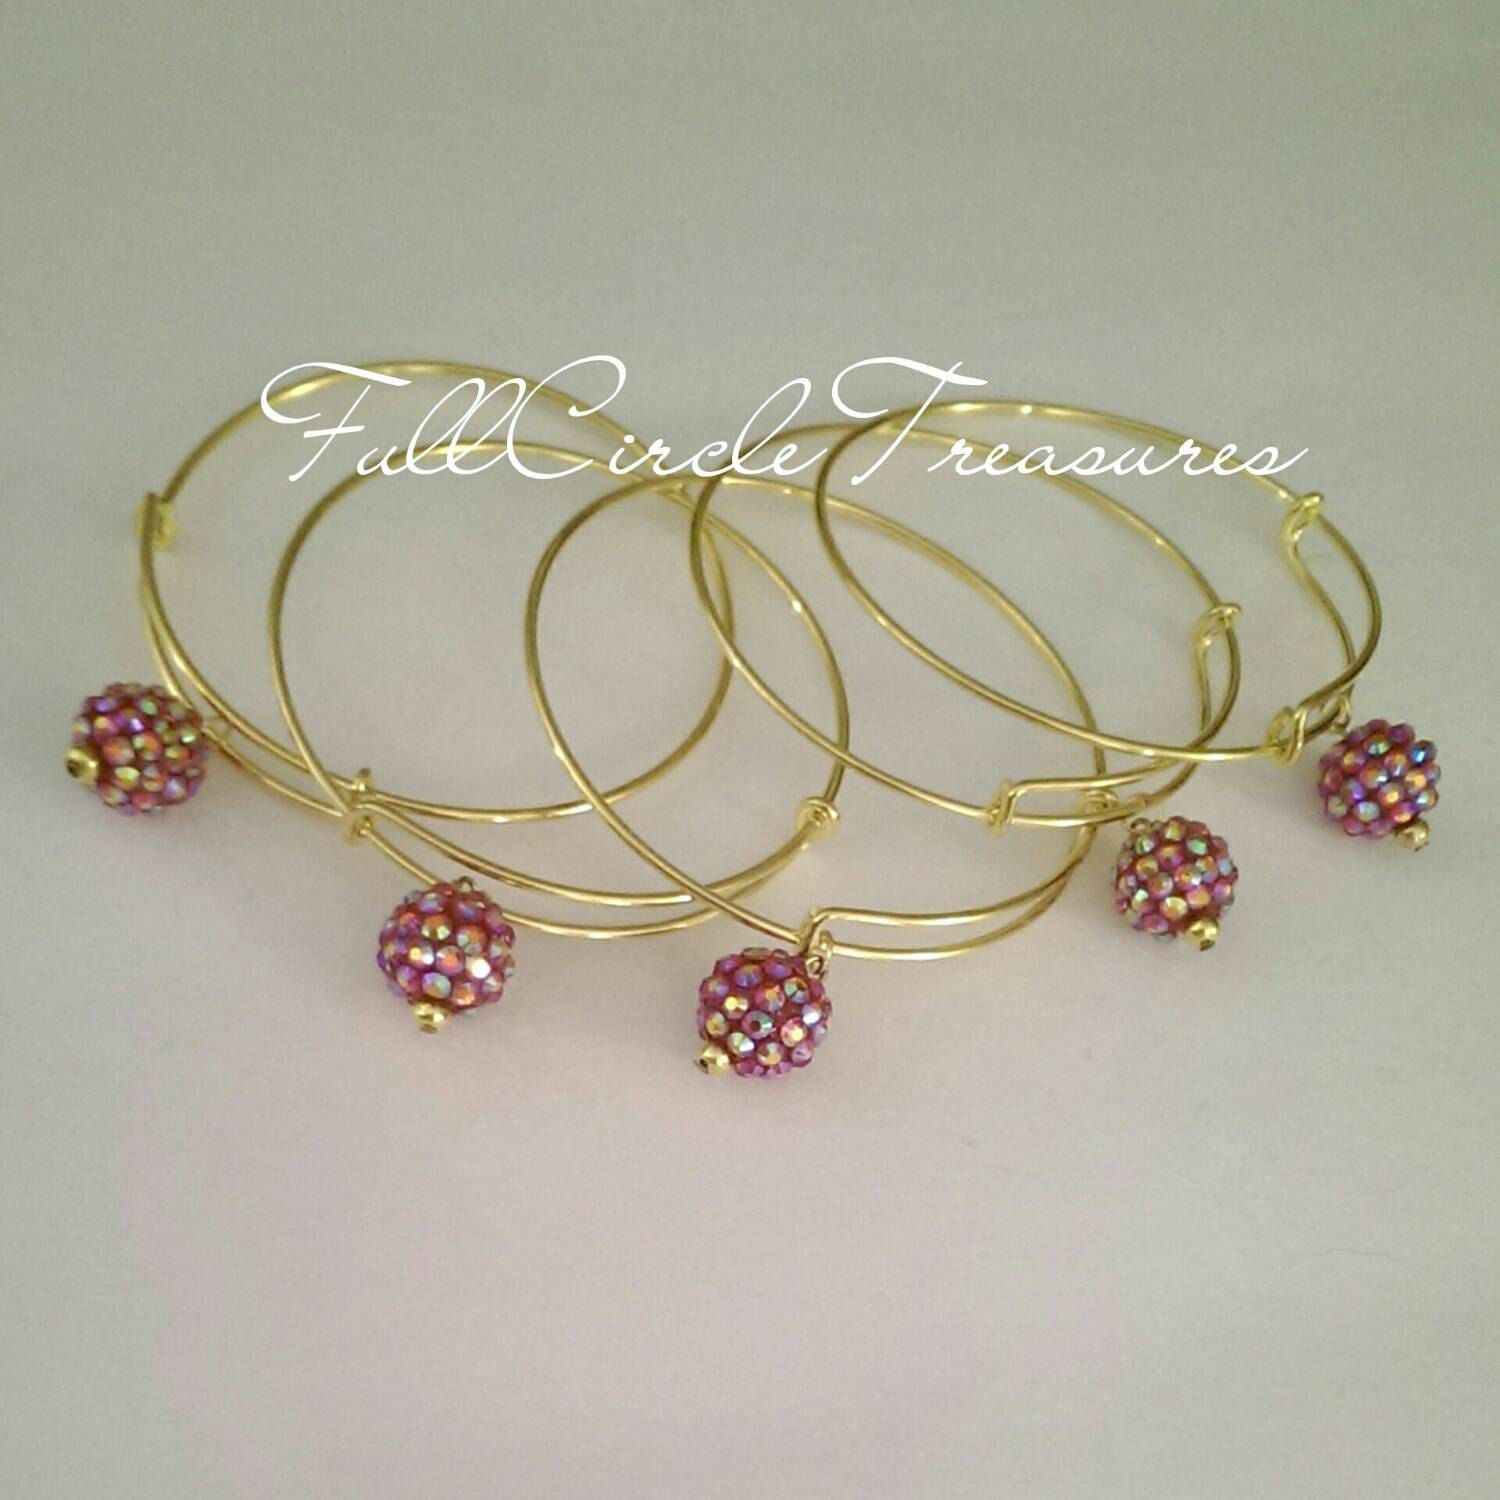 swarovski of ombre bracelet wedding day in rivoli an crystal perfect pink pin